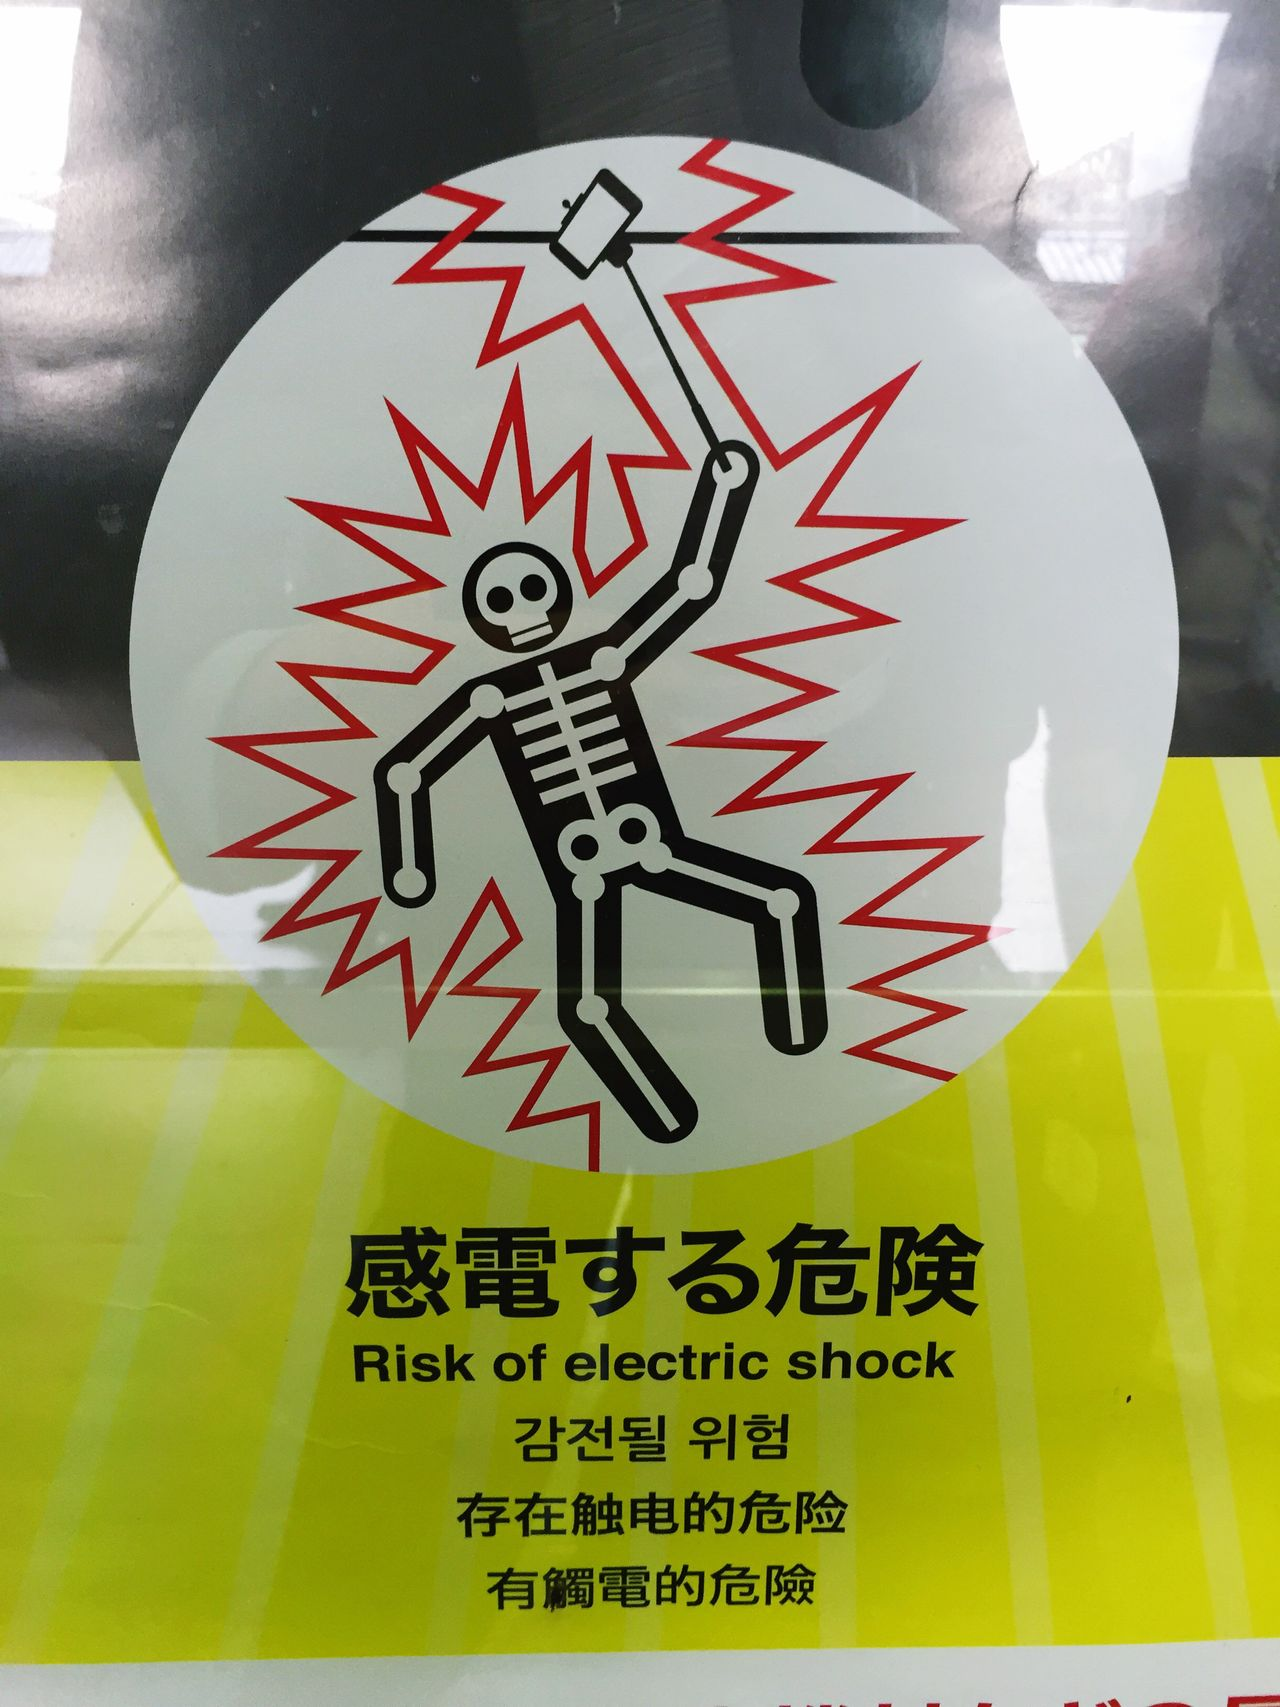 Death By Selfie No Selfie No Selfie Sticks Electrocution